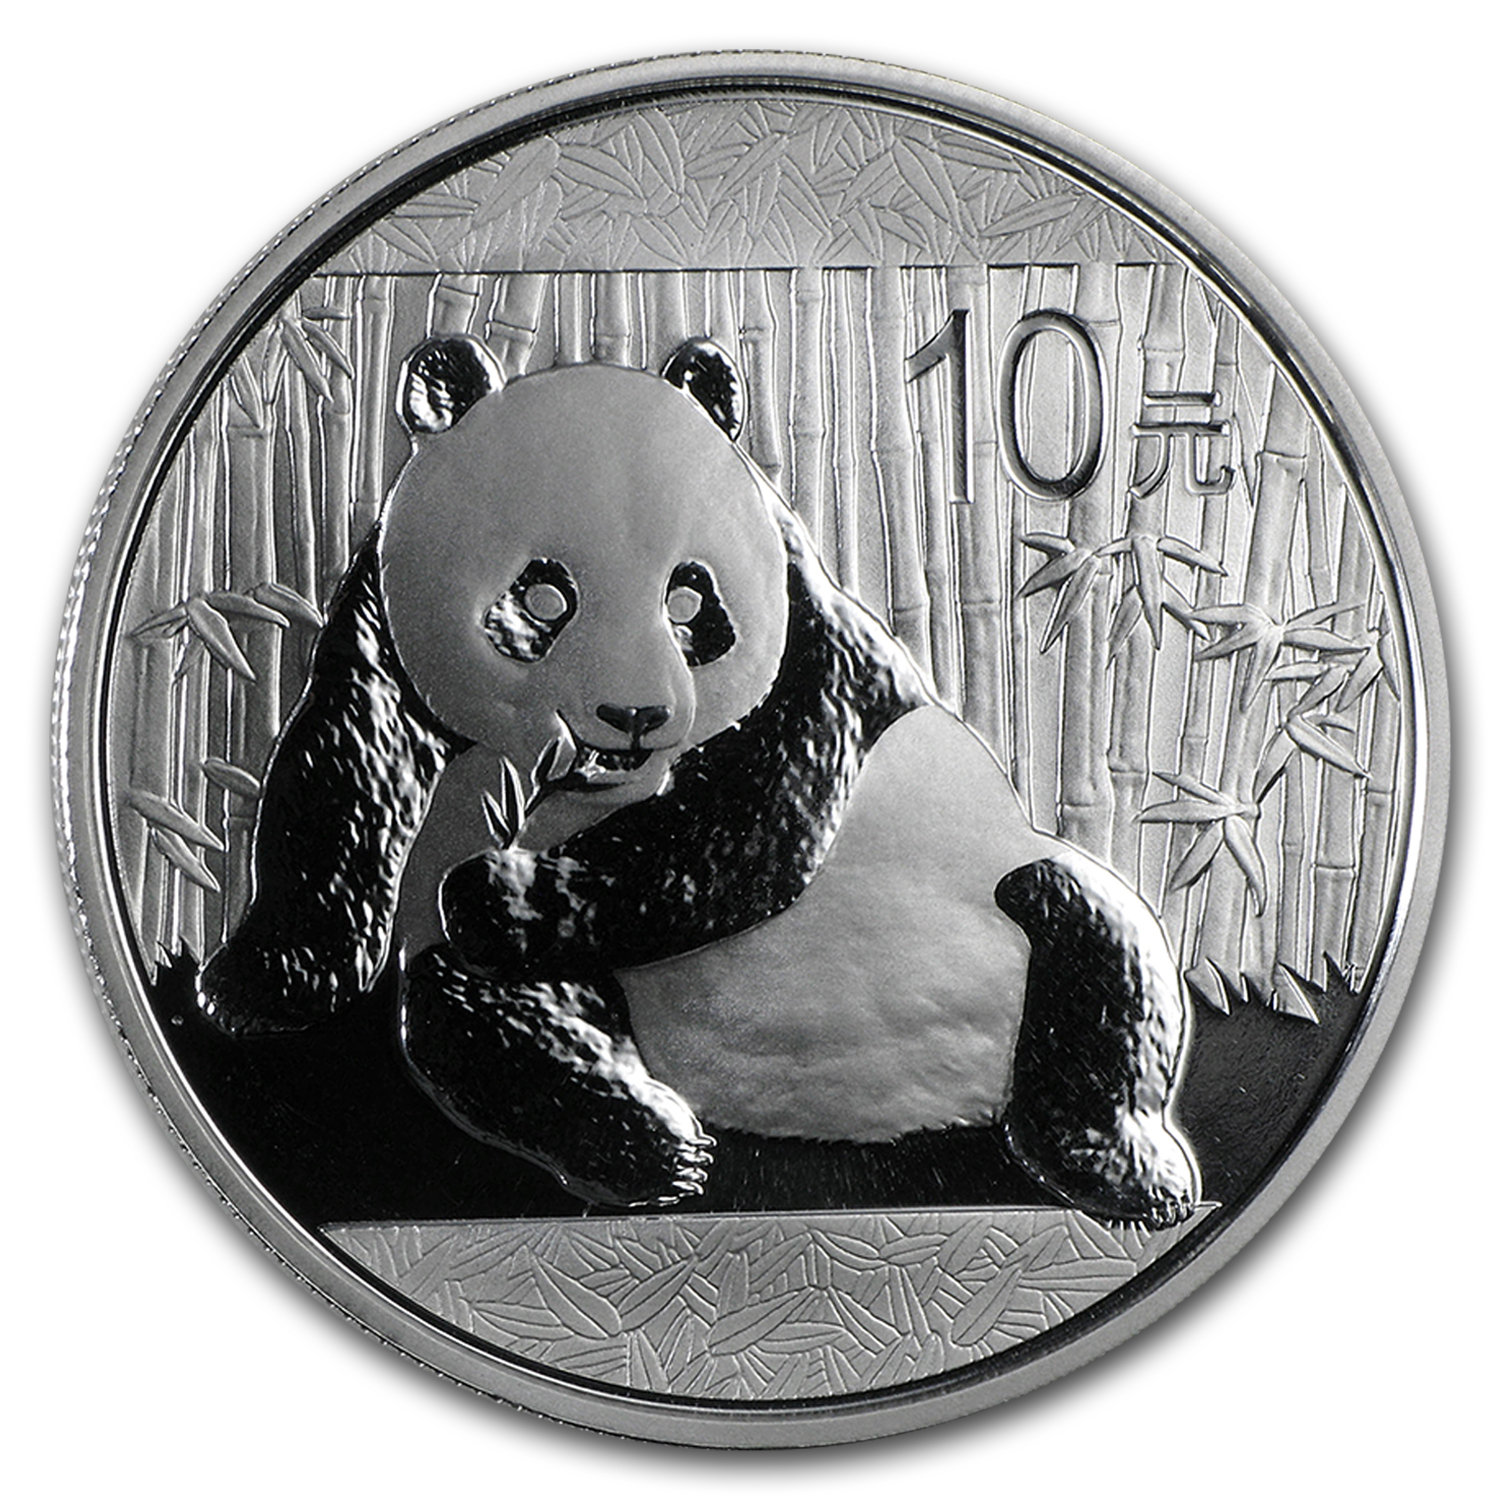 2015 China 1 oz Silver Panda BU (In Capsule)